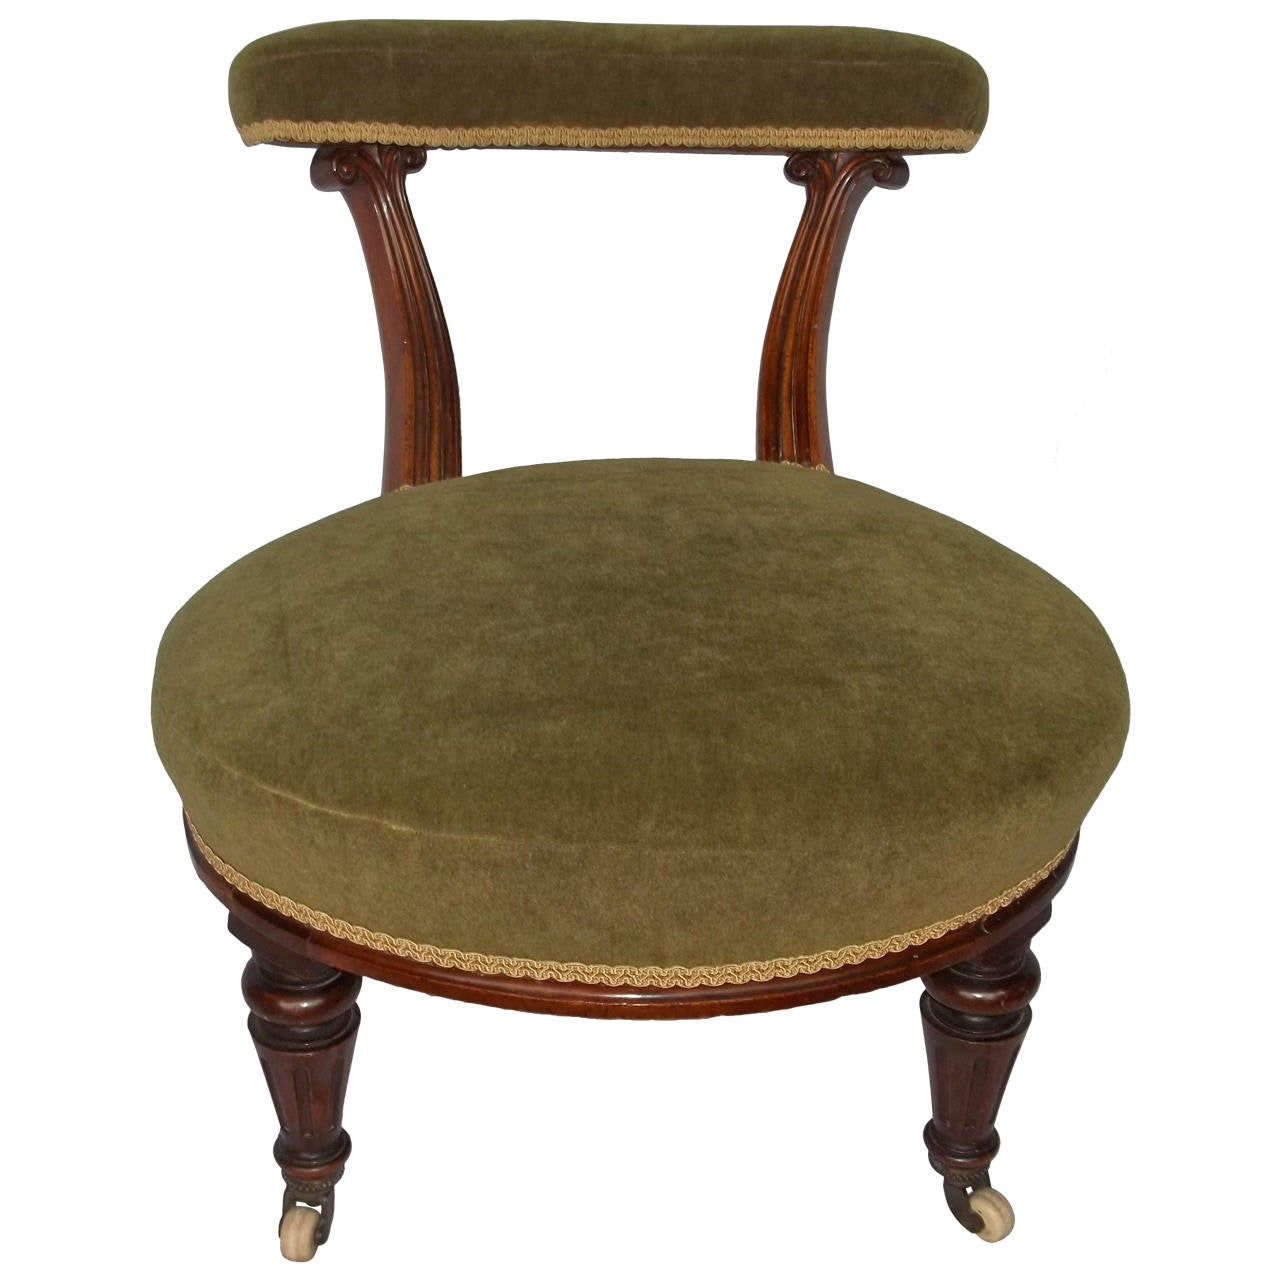 Victorian Walnut NURSING CHAIR circa 1850 at 1stdibs